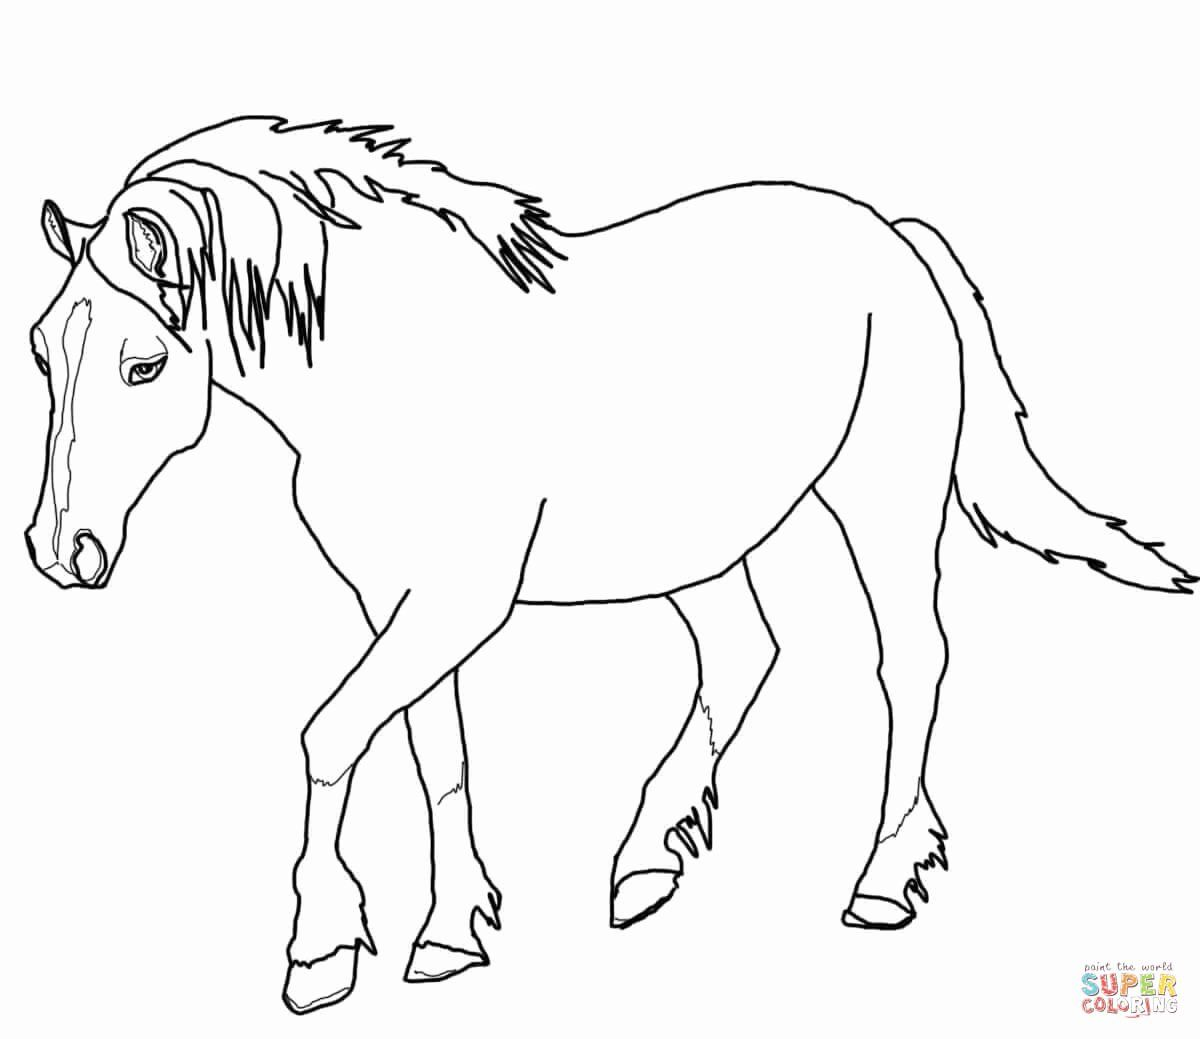 Horse Printable Coloring Pages Awesome Palomino Welsh Horse Coloring Page Horse Coloring Horse Coloring Pages Horse Coloring Books [ 1039 x 1200 Pixel ]